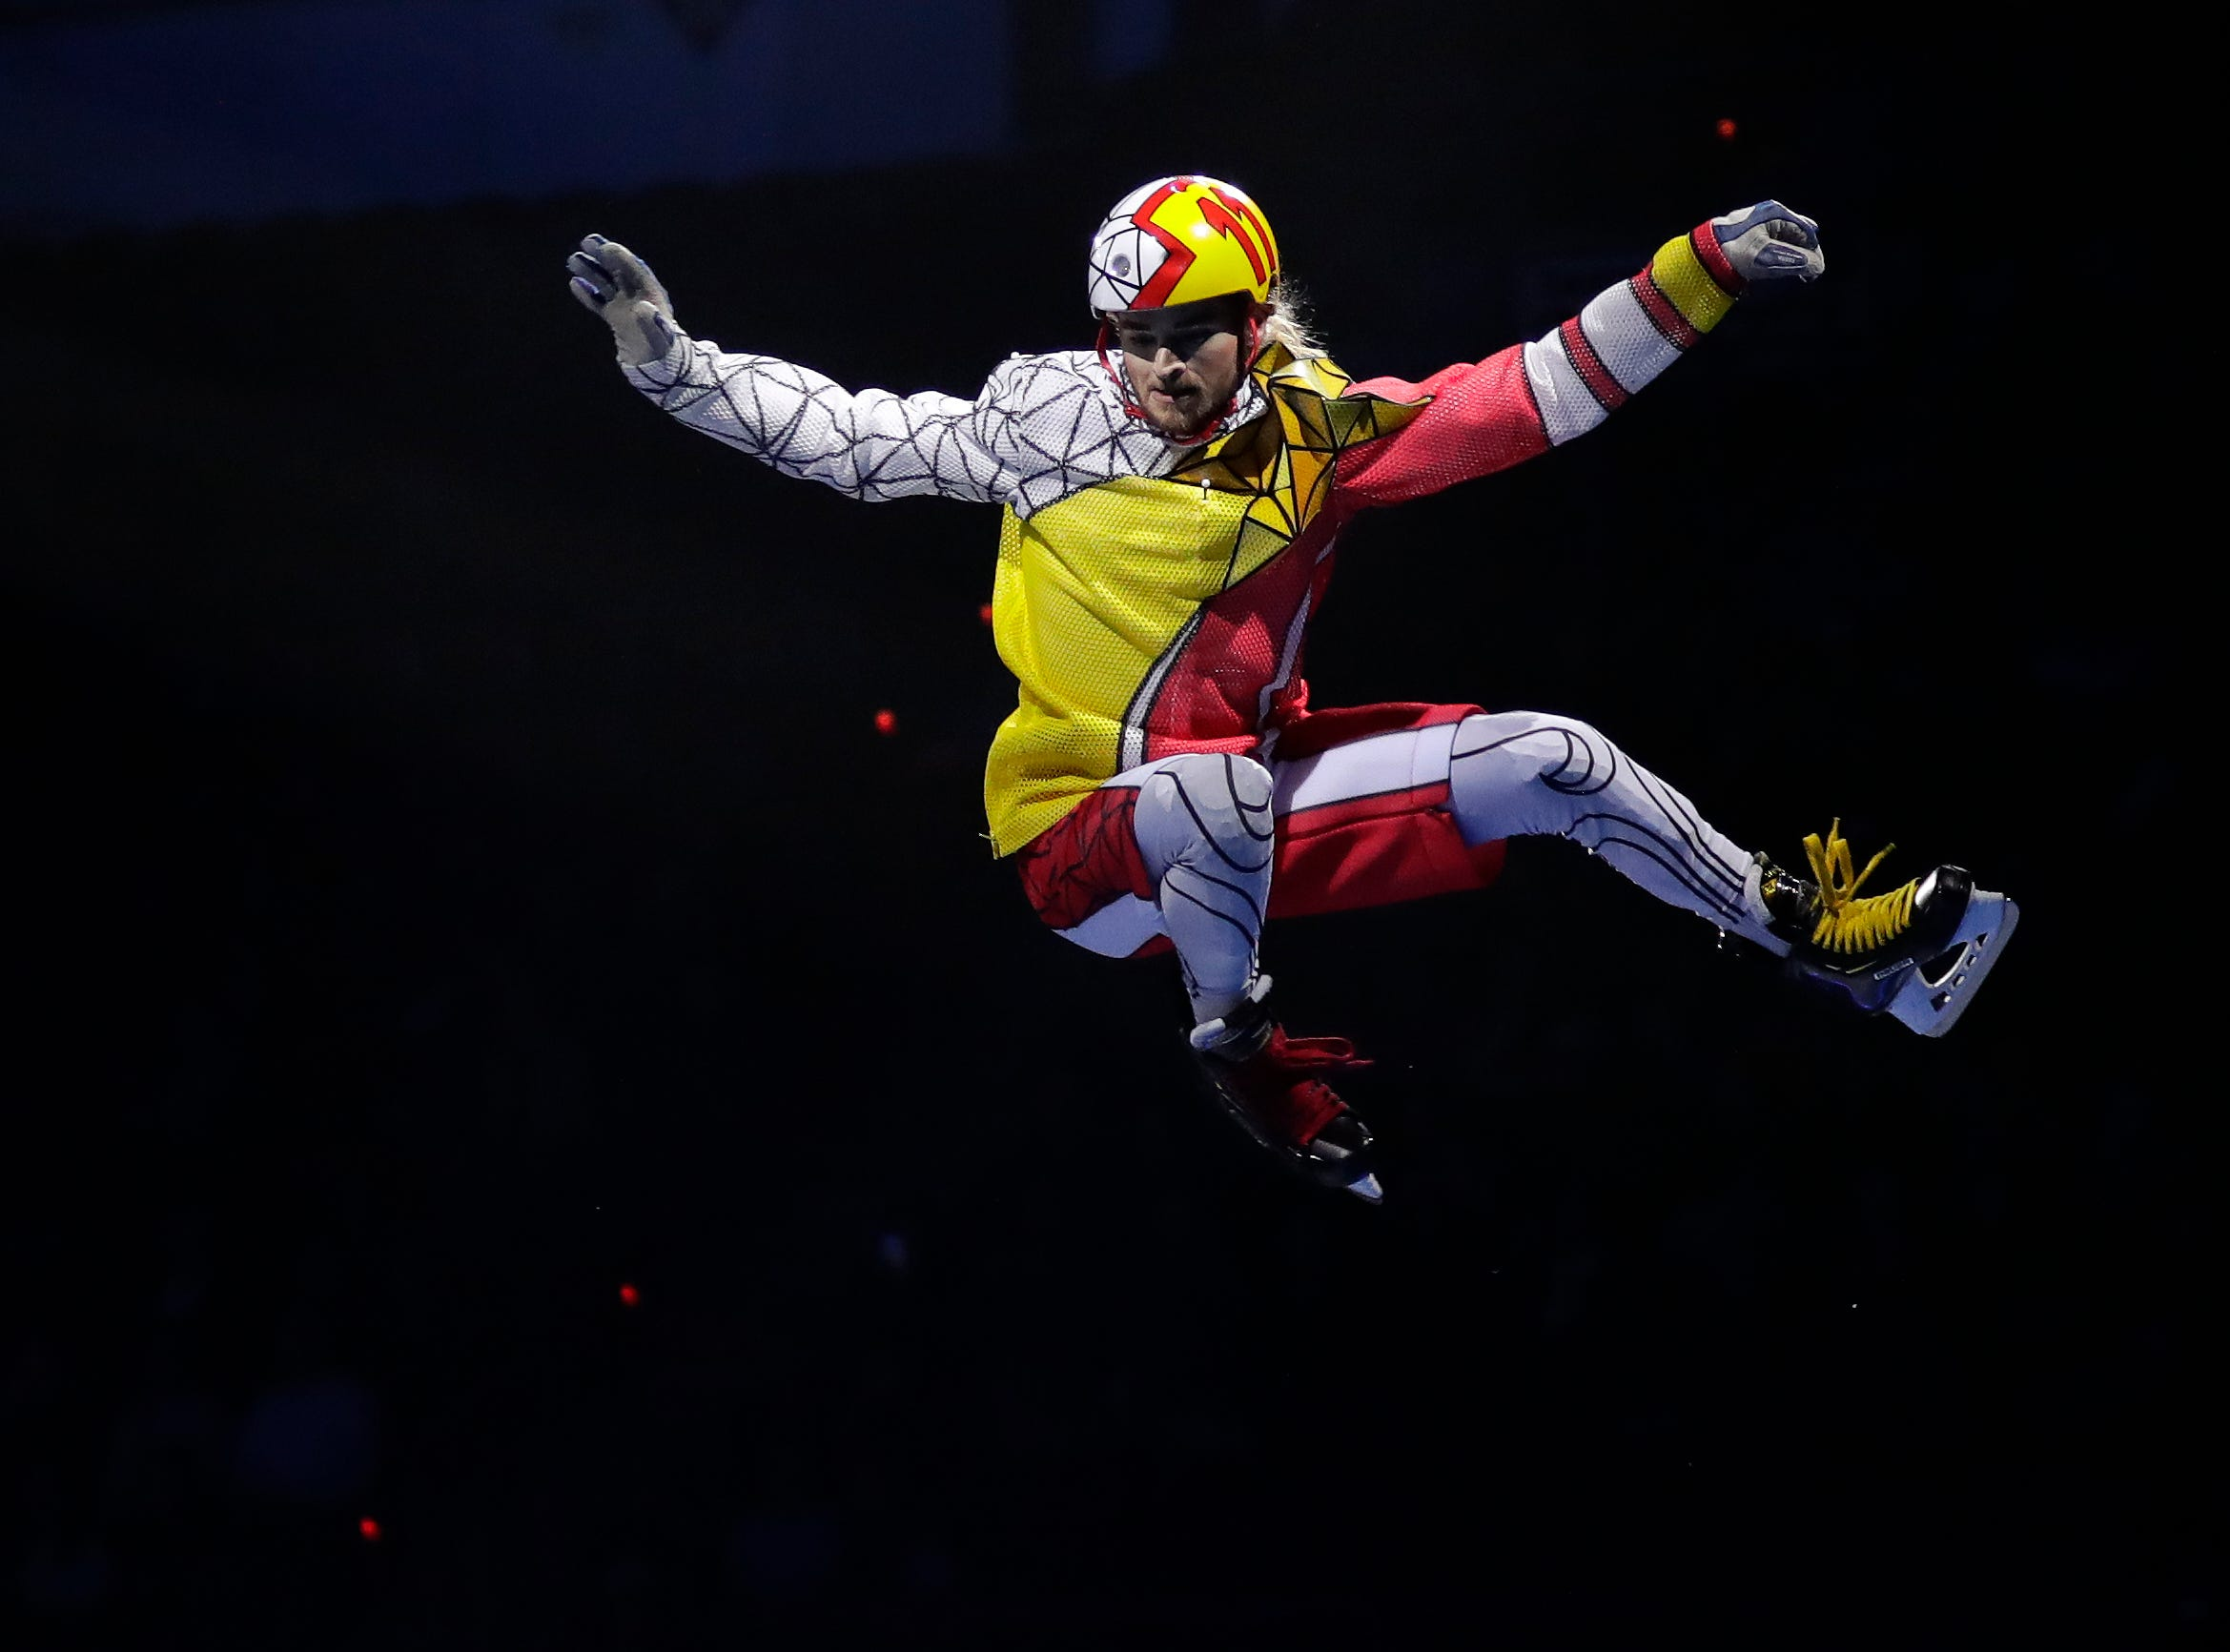 """Cirque du Soleil's """"Crystal"""" opened Oct. 11, 2018 at the Resch Center in Ashwaubenon, Wis. with shows continuing through Oct. 14, 2018."""